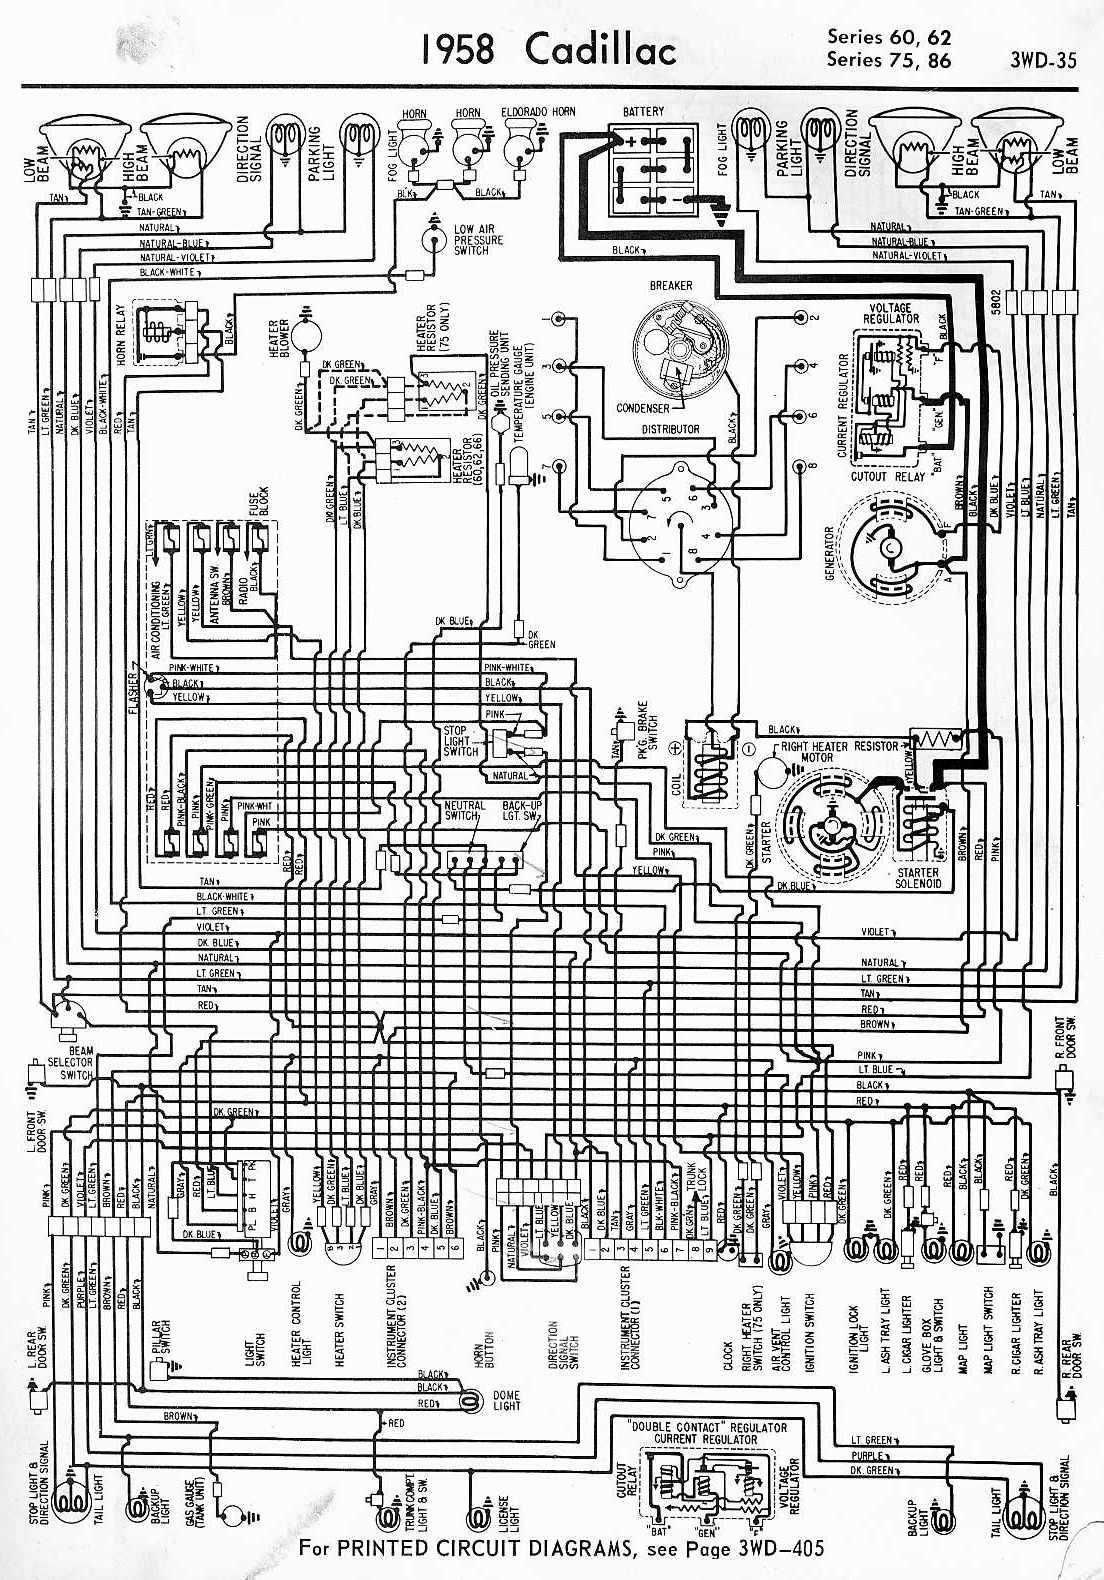 Awesome 1997 Cadillac Deville Wiring Diagrams Illustration Wiring